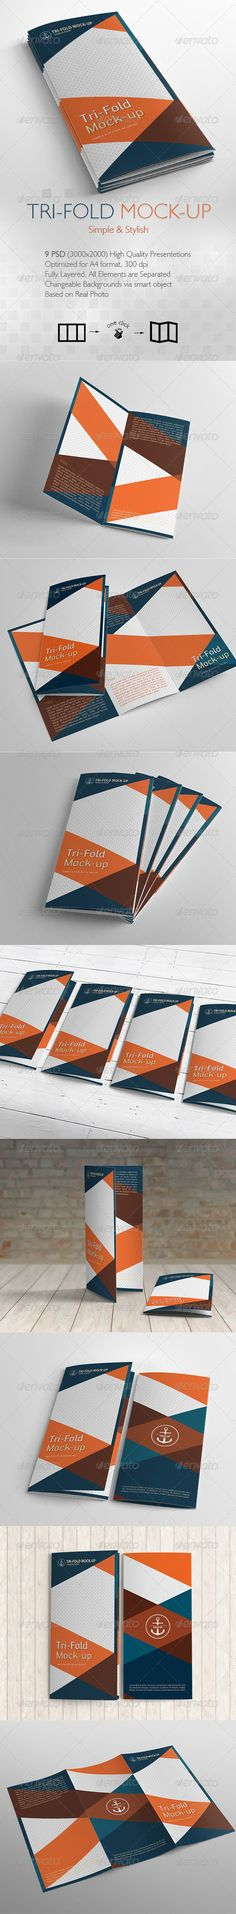 TriFold Brochure Mockup / 9 Different Images — Photoshop PSD #documents #a4 • Available here → https://graphicriver.net/item/trifold-brochure-mockup-9-different-images/6615077?ref=pxcr